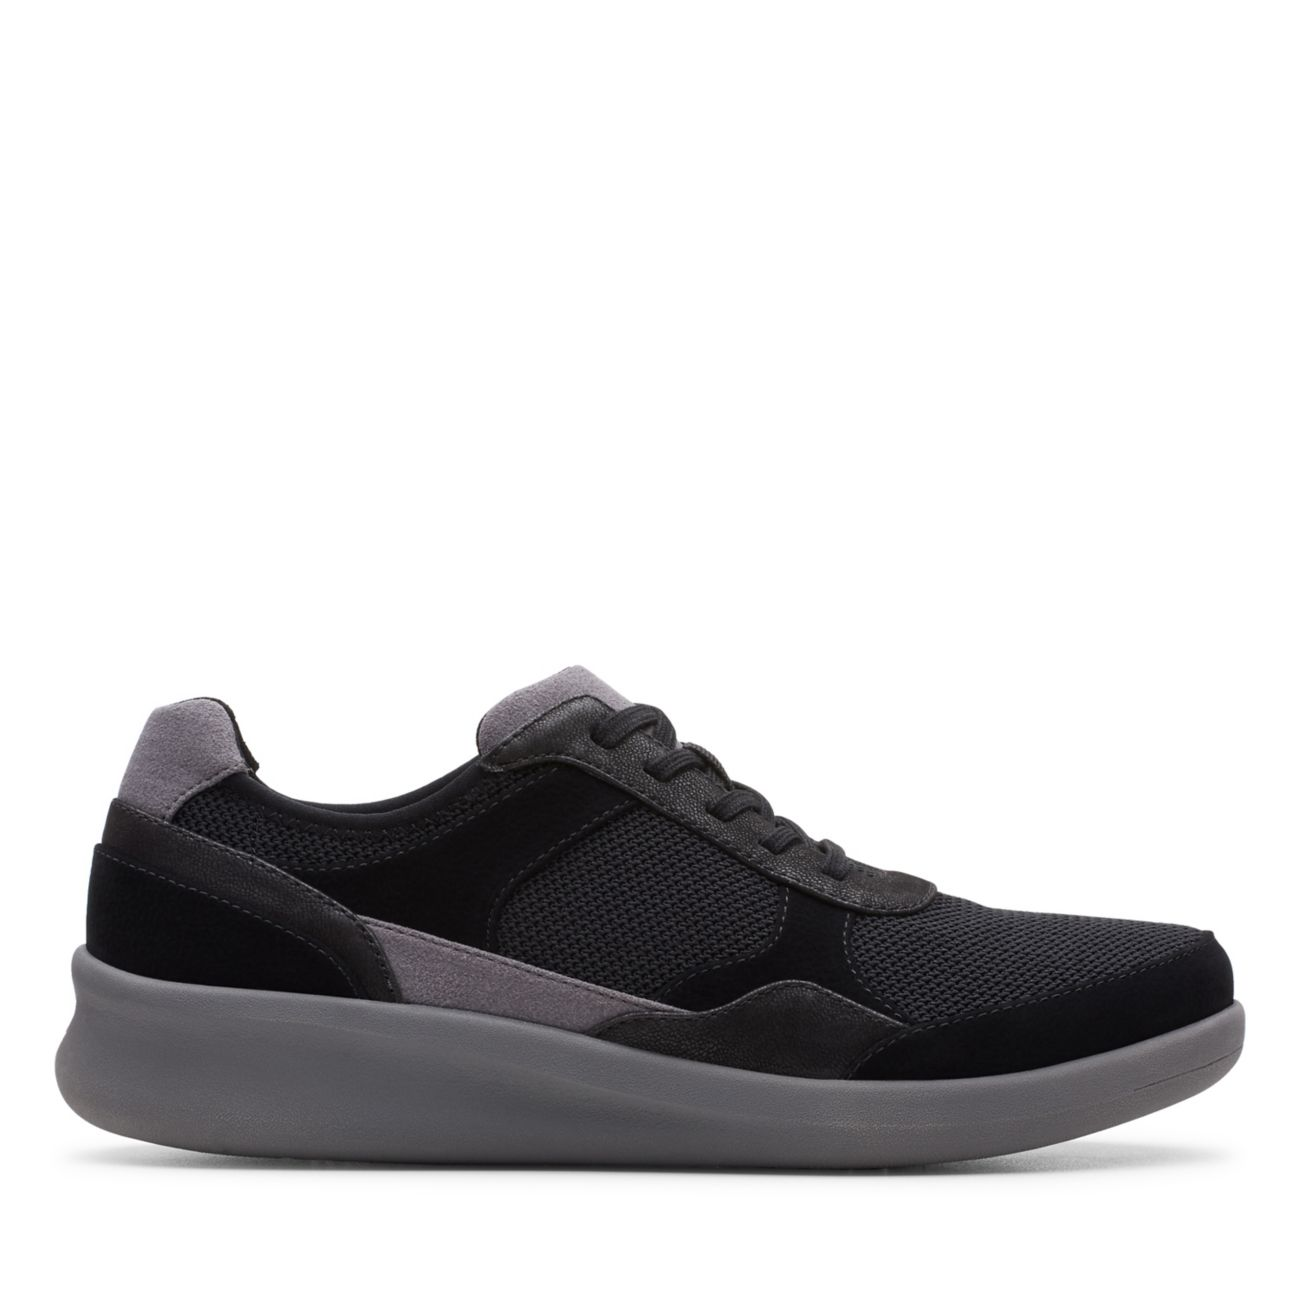 Sillian2.0Lace Black -Womens Sneakers- Clarks® Shoes Official Site | Clarks